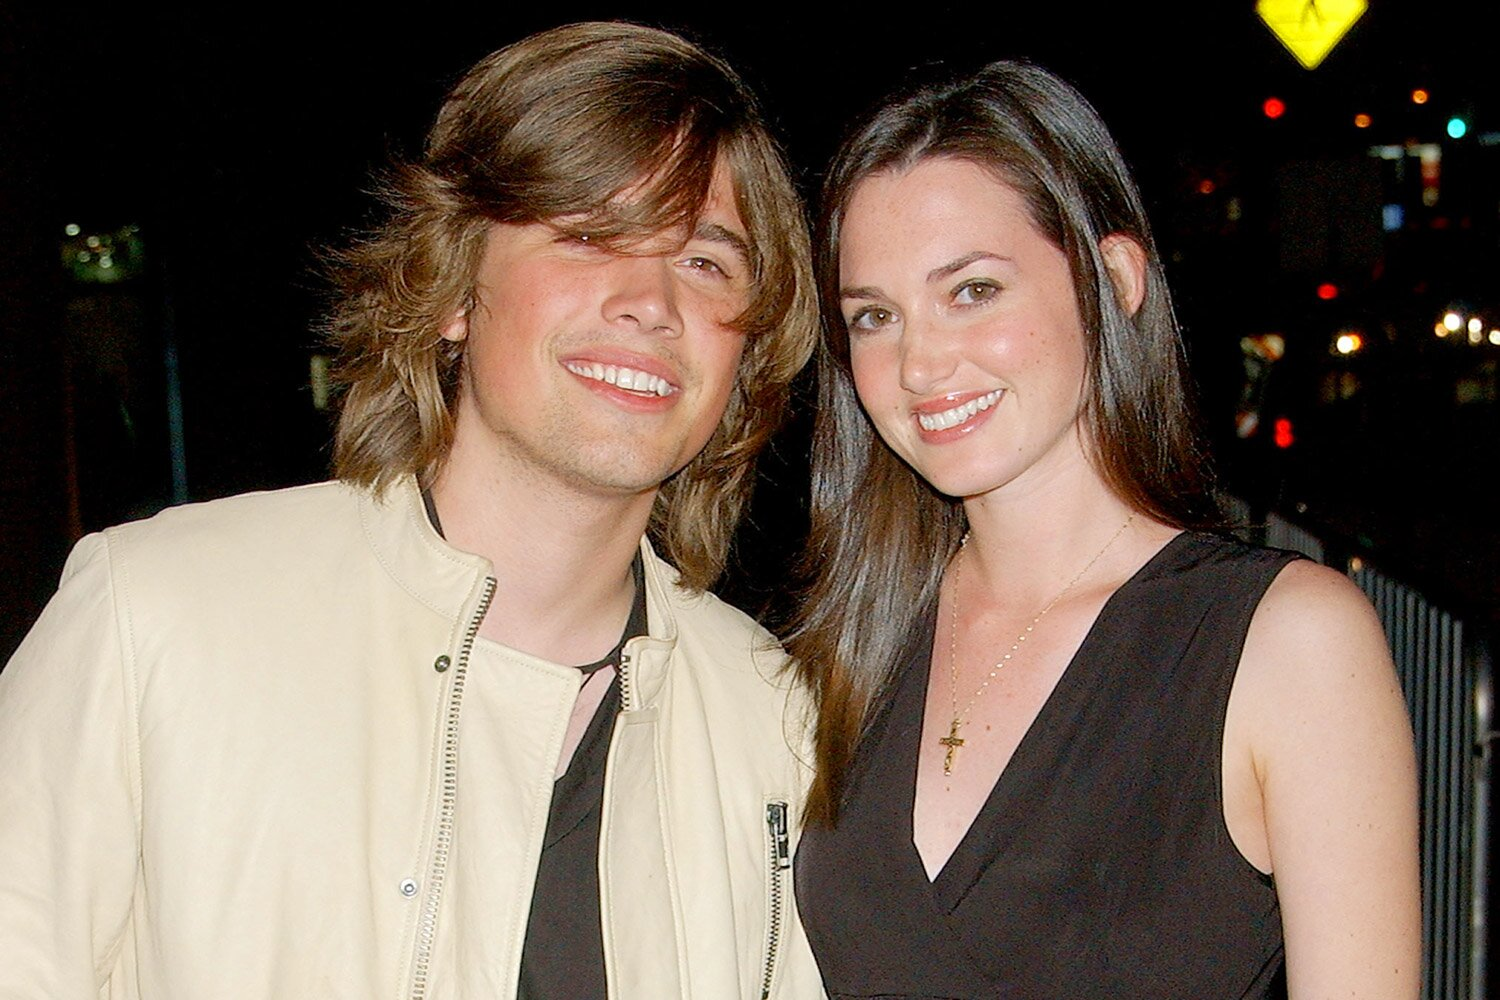 Zac Hanson and wife Kate